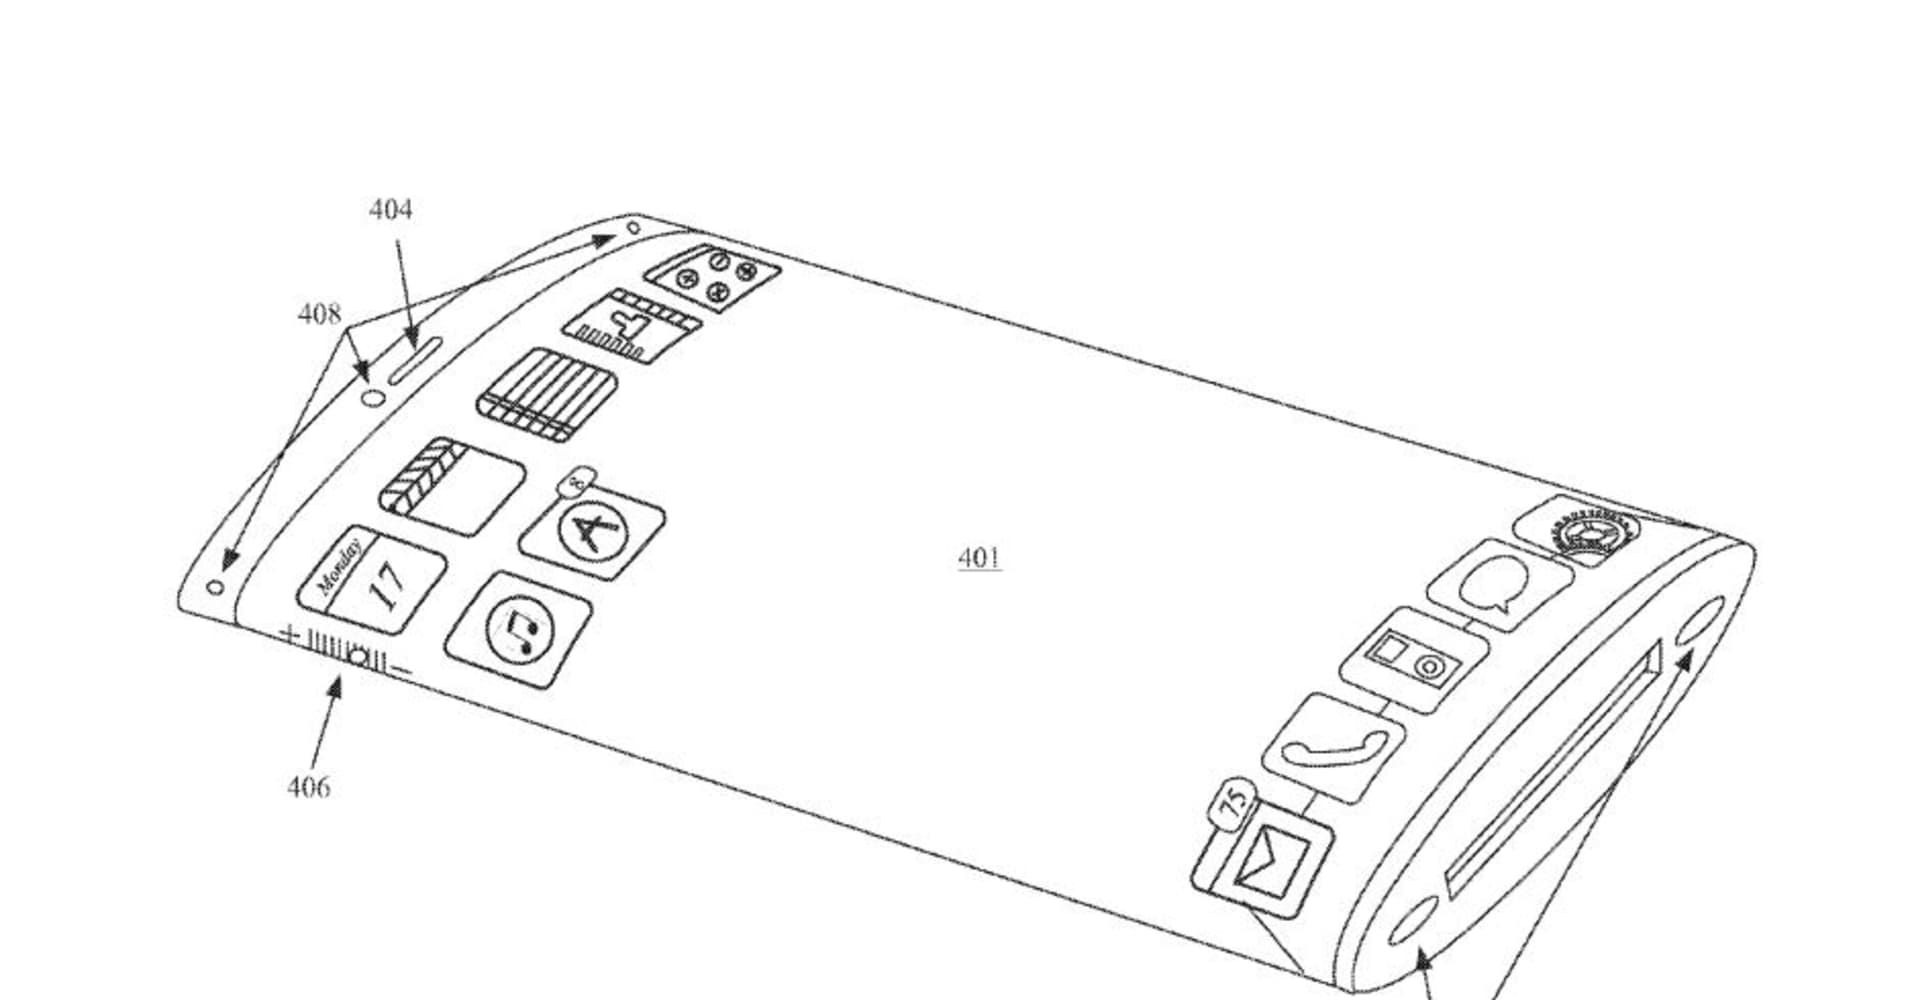 Apple patents show future iPhone could have a wraparound